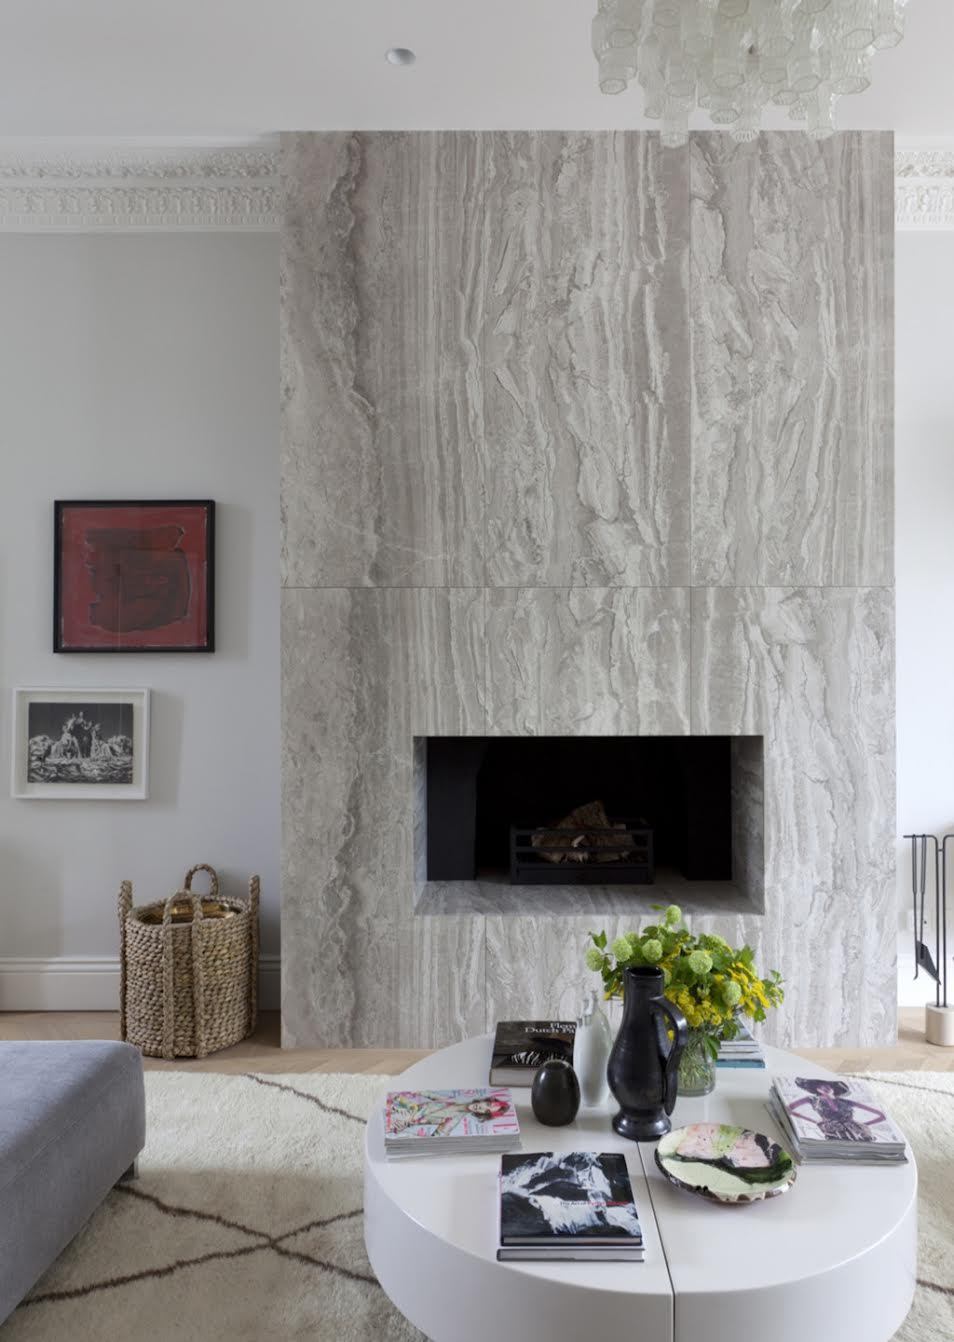 Studio McGee | How To Clean Marble